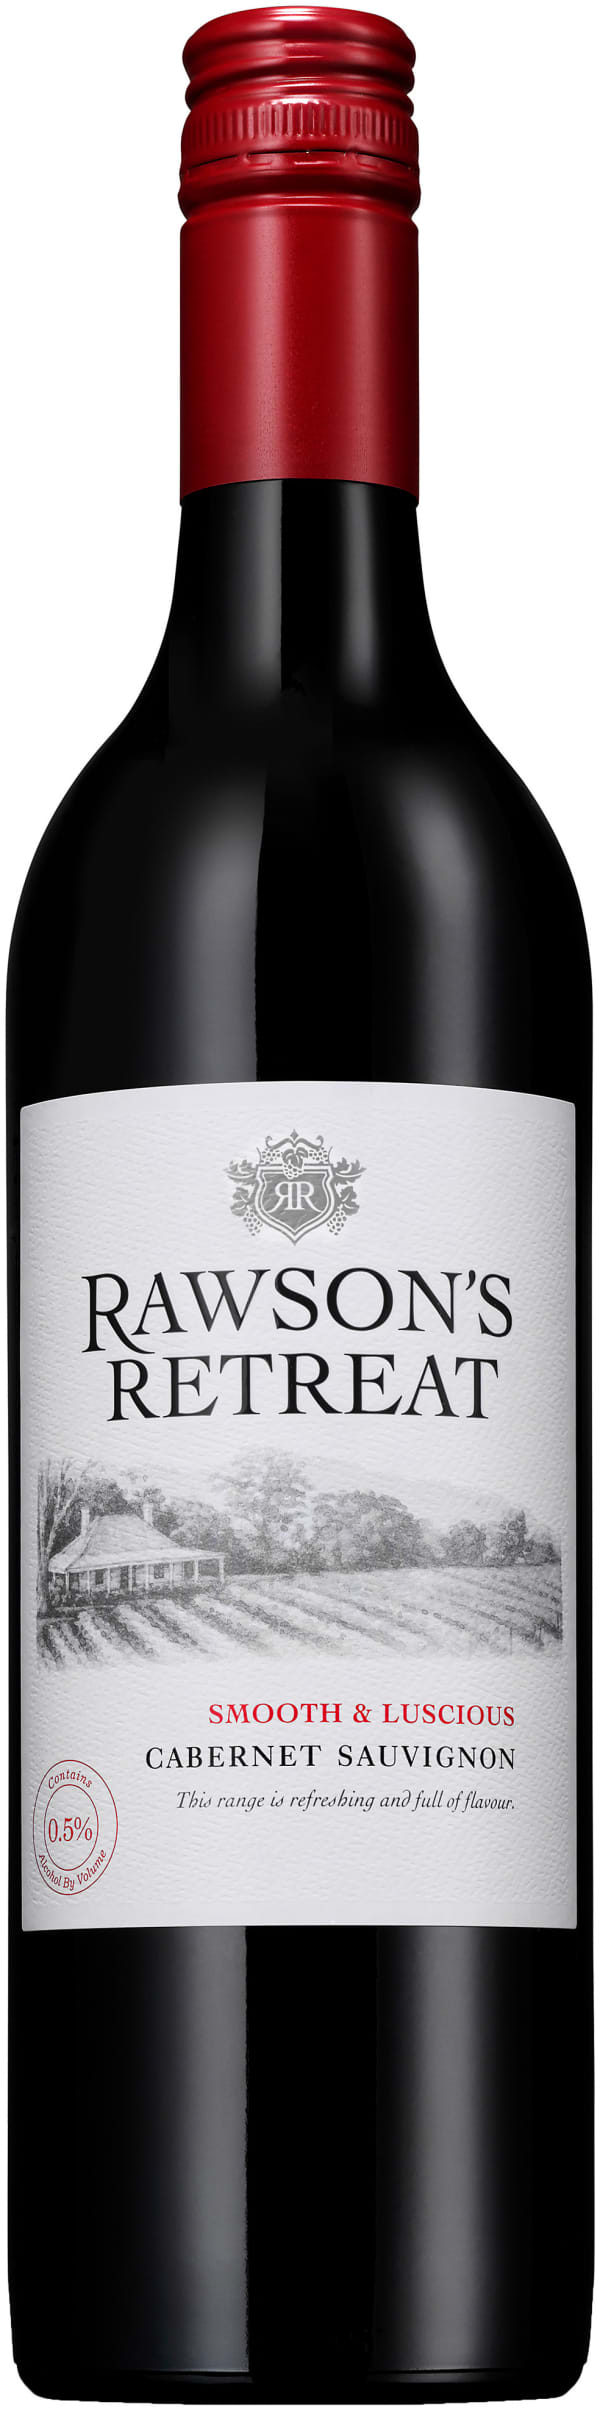 Rawson's Retreat Alcohol Free Cabernet Sauvignon